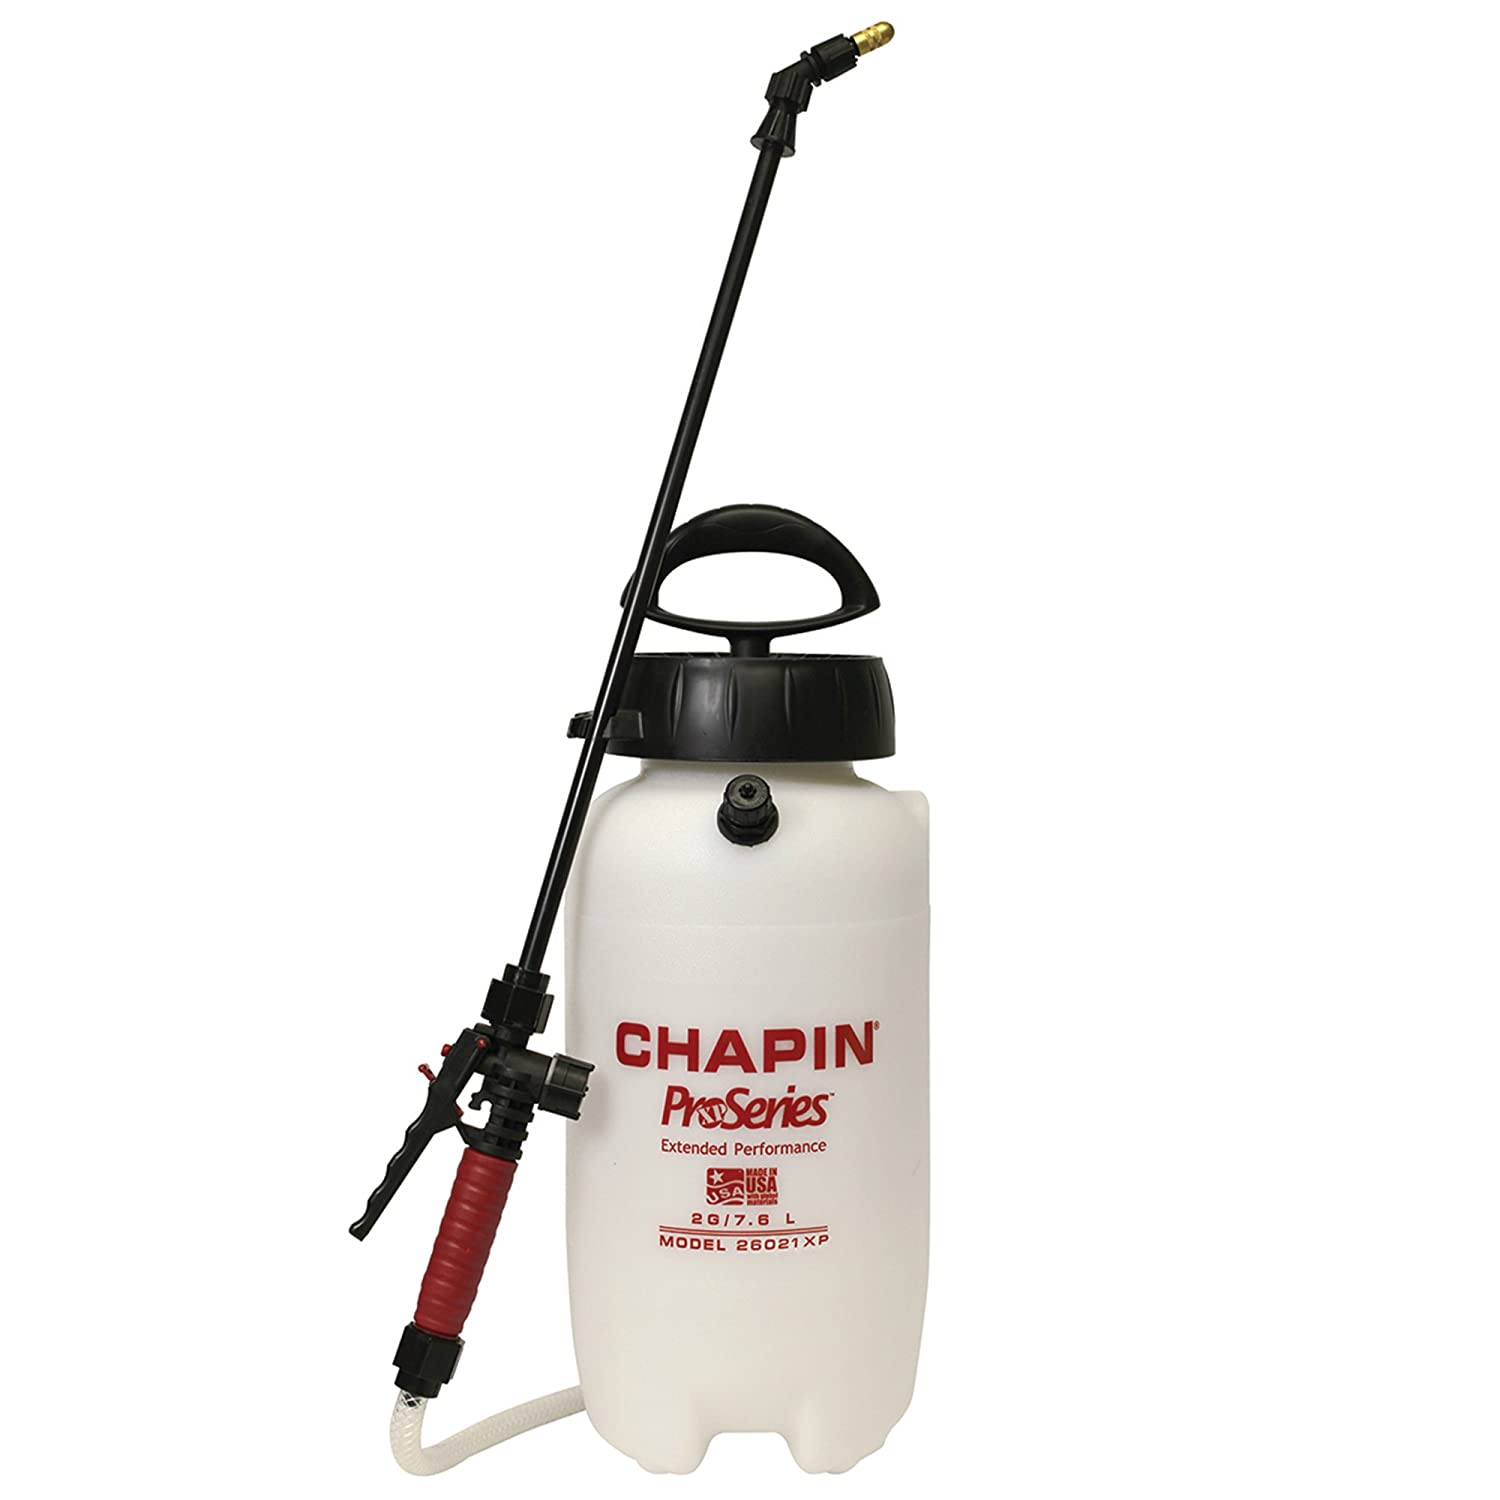 Chapin 2-Gallon ProSeries Poly Sprayer (26021XP)